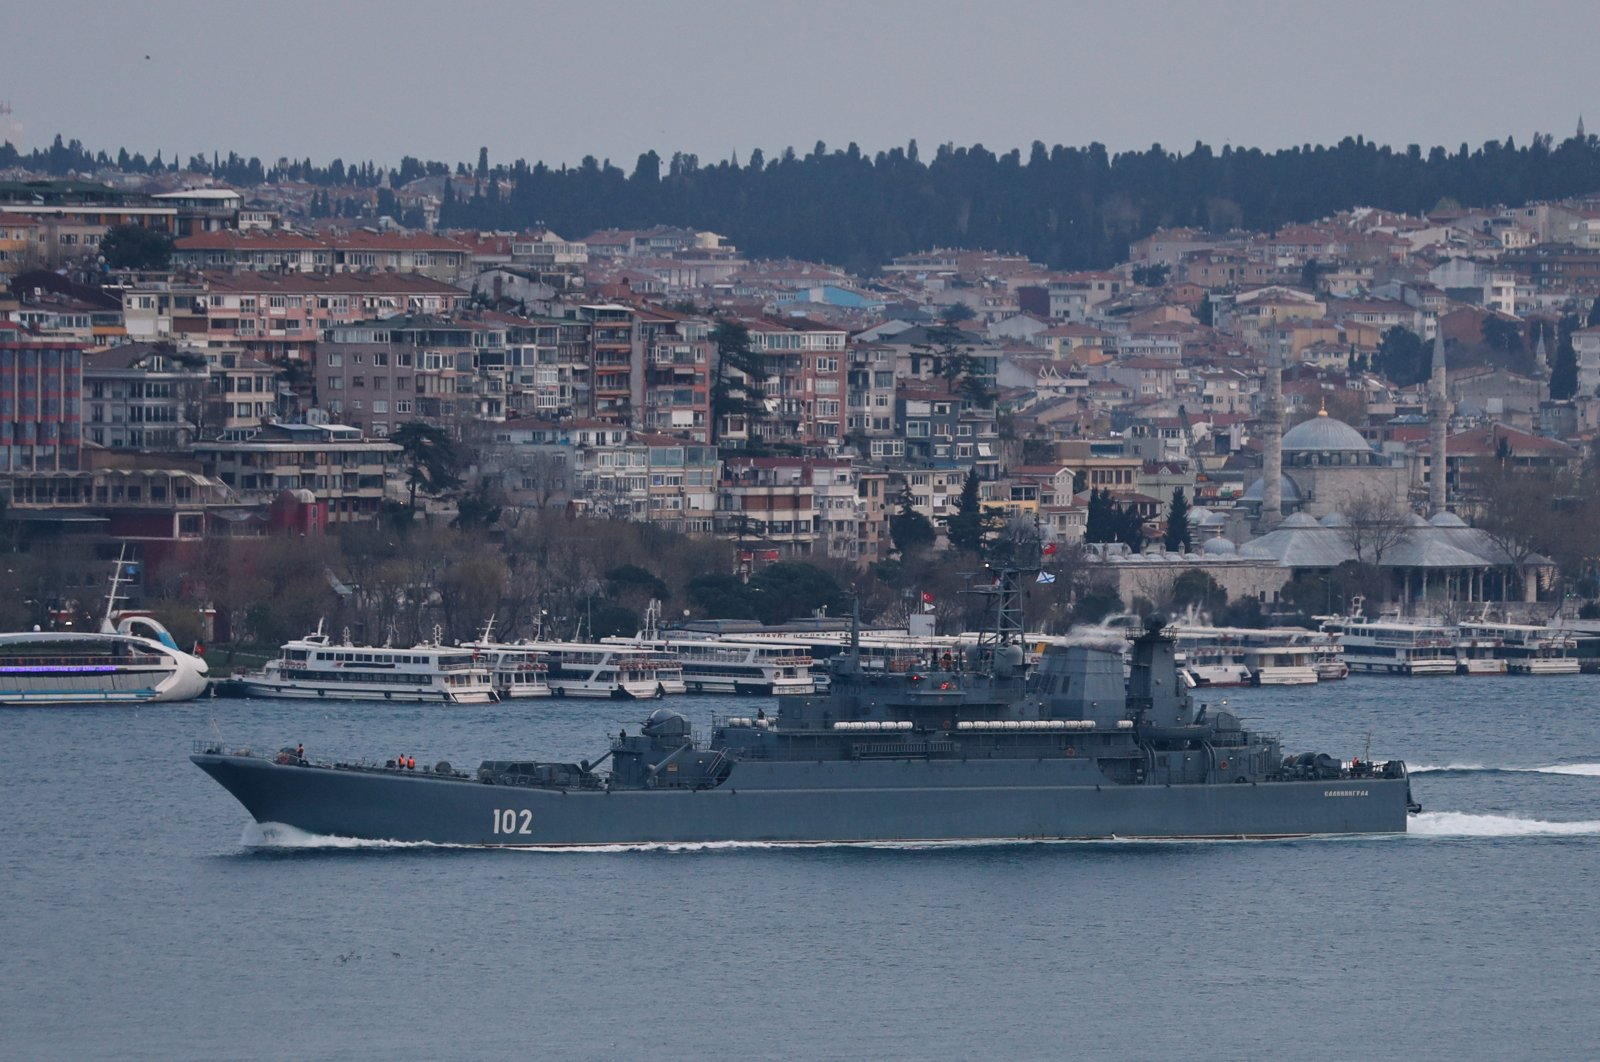 The Russian Navy's Ropucha-class landing ship Kaliningrad sets sail in the Bosporus, on its way to the Black Sea, in Istanbul, Turkey April 17, 2021. (Reuters Photo)